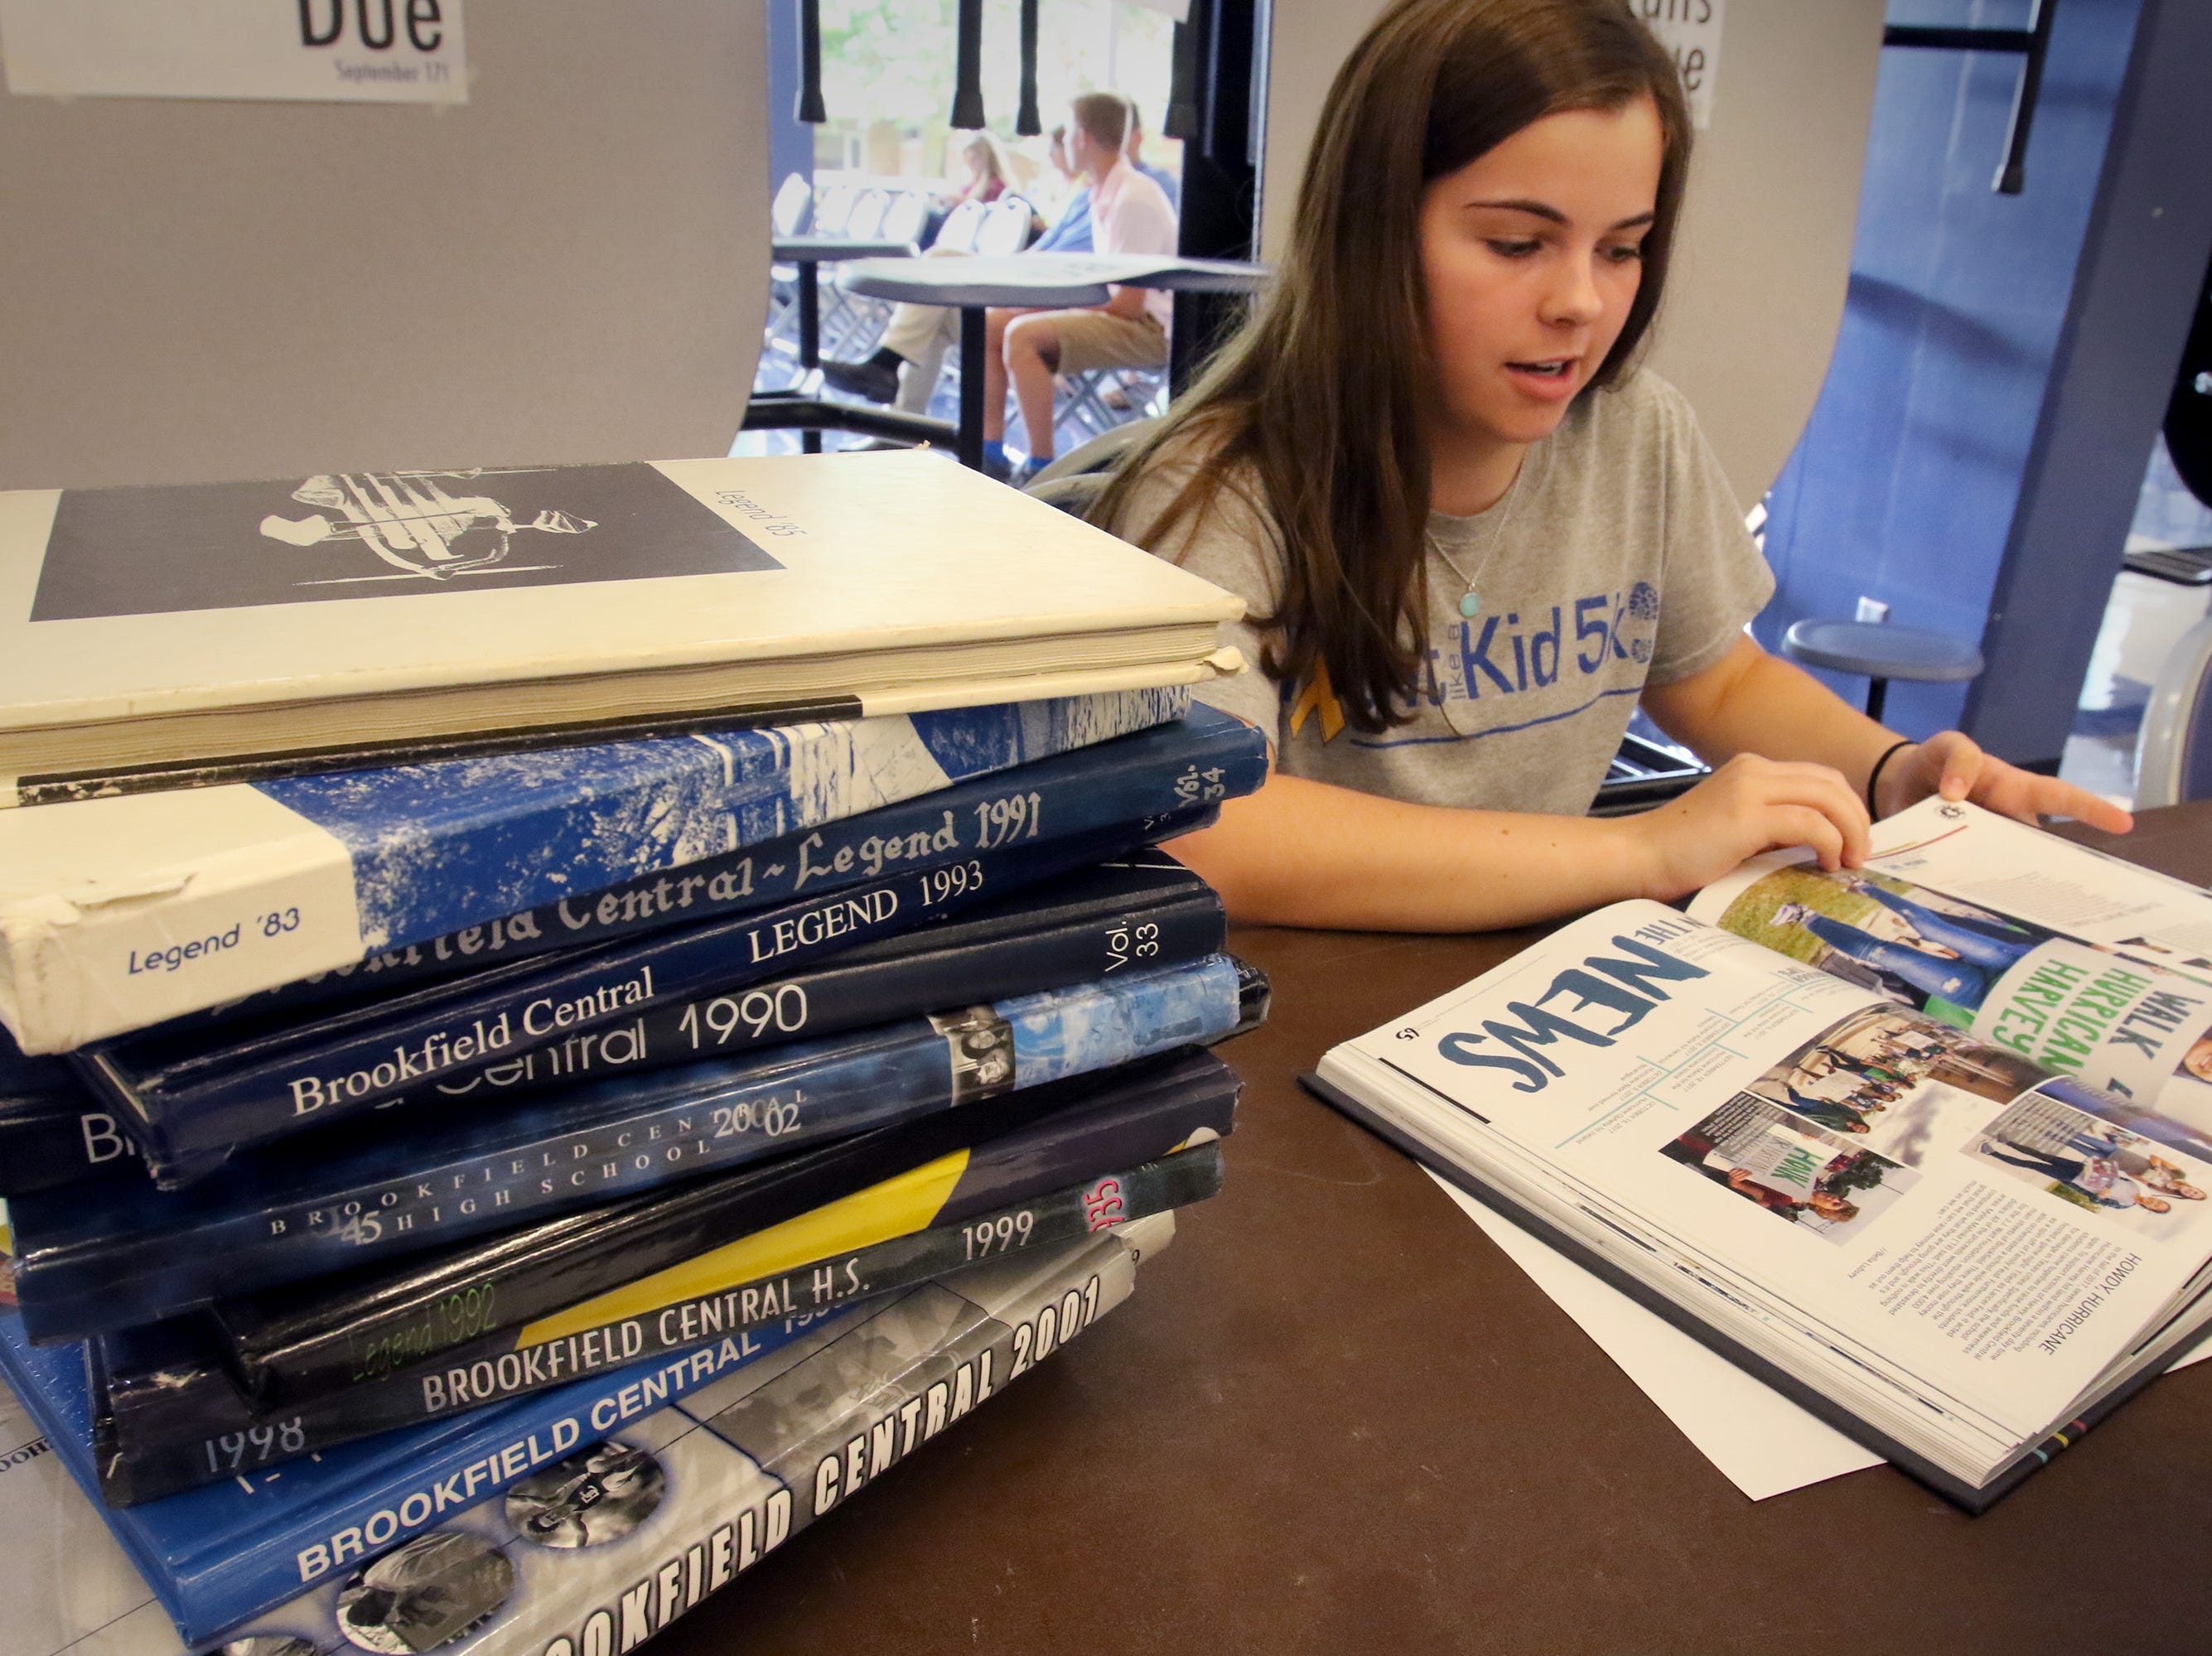 Mary Ellen Ritter, editor for the Legend yearbook, mans a booth during Brookfield Central High School's registration day on Aug. 8.